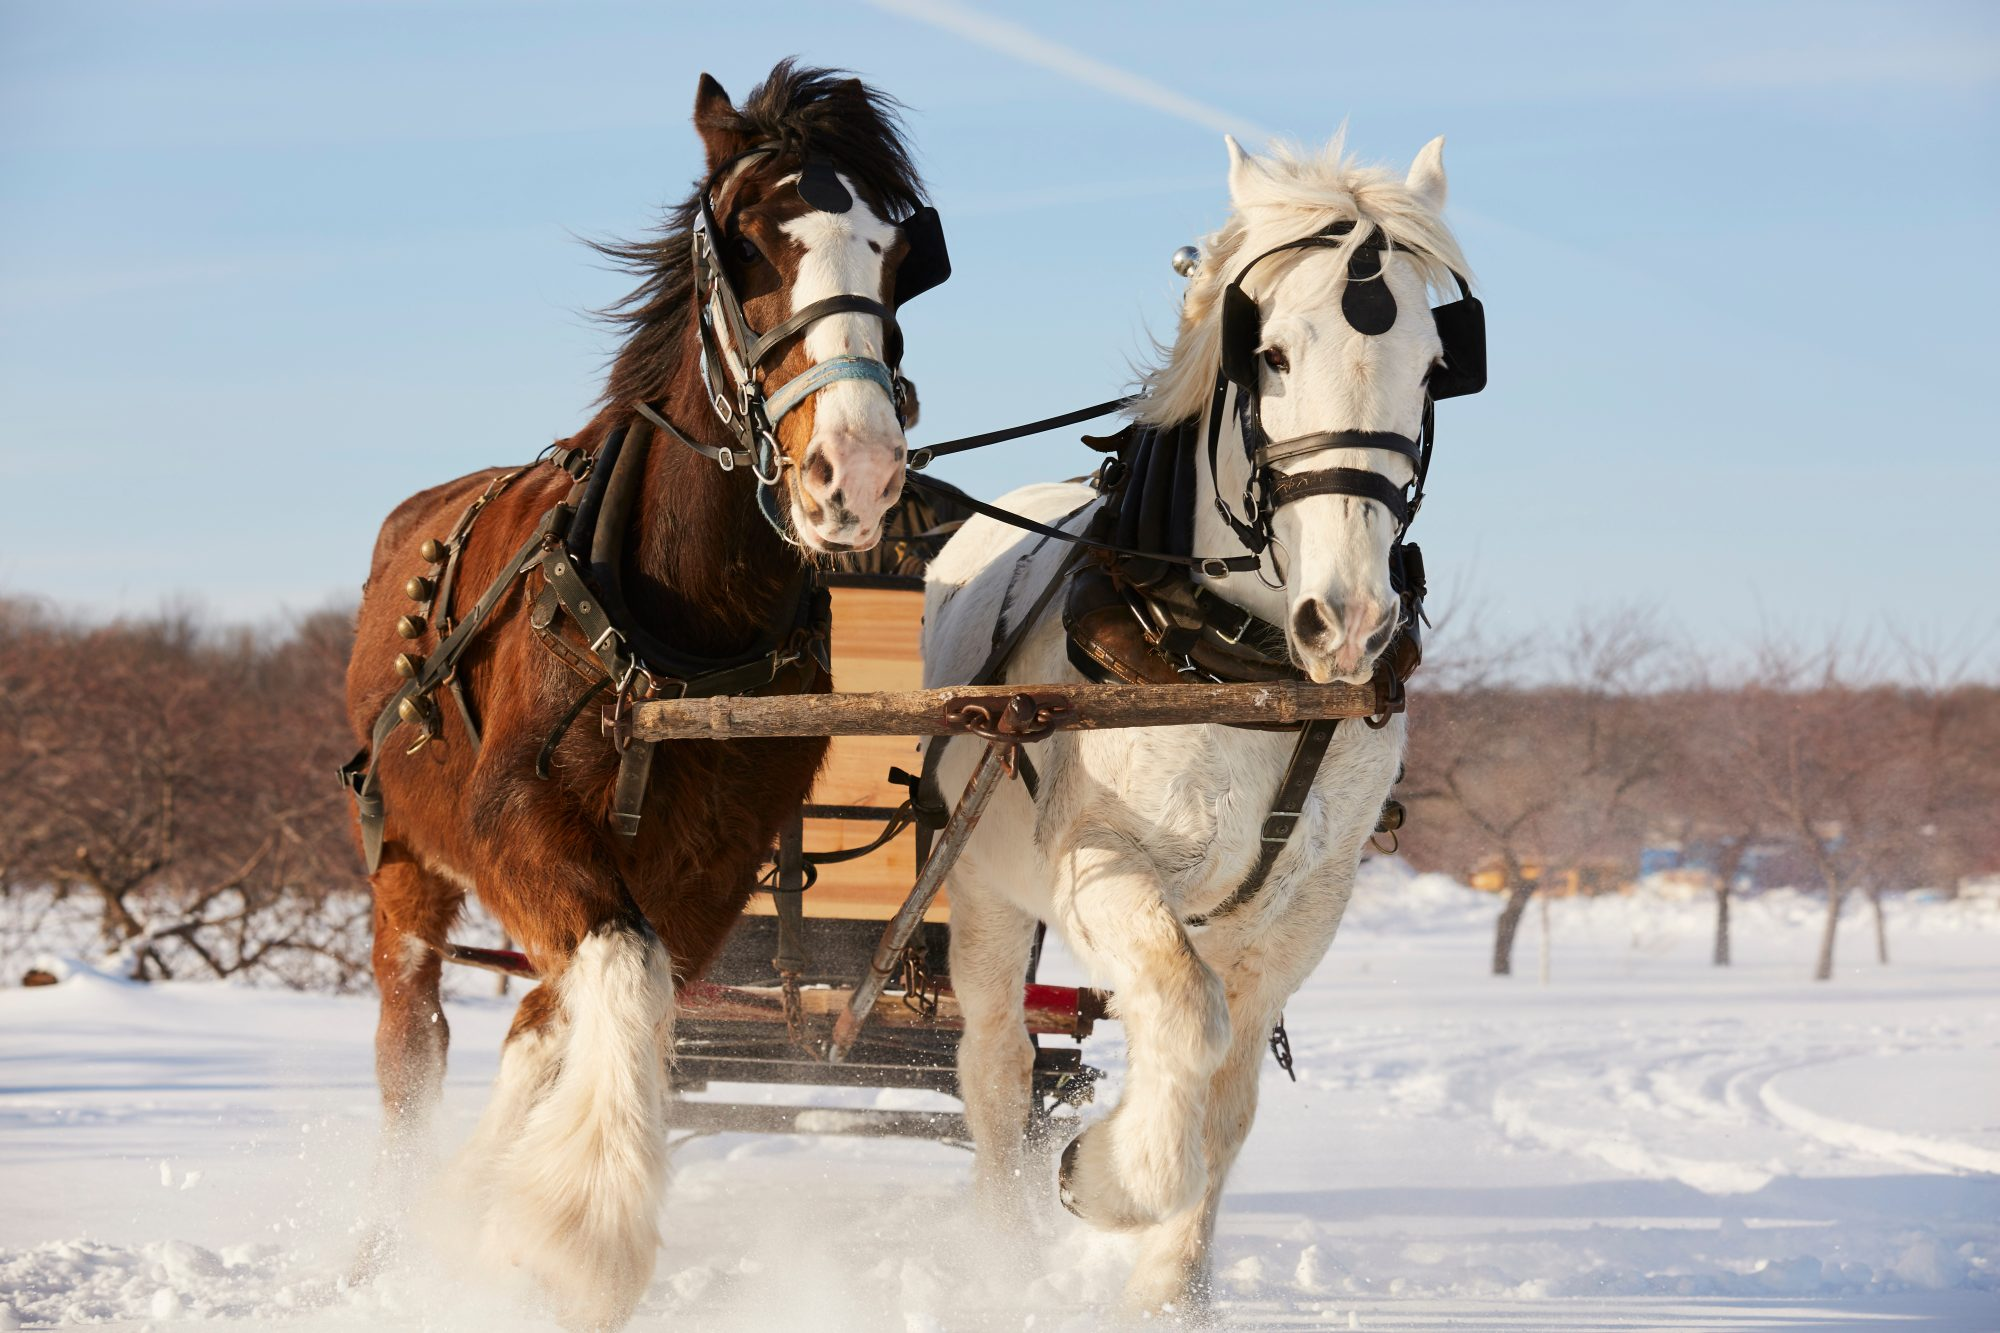 horses pulling sleigh in the snow